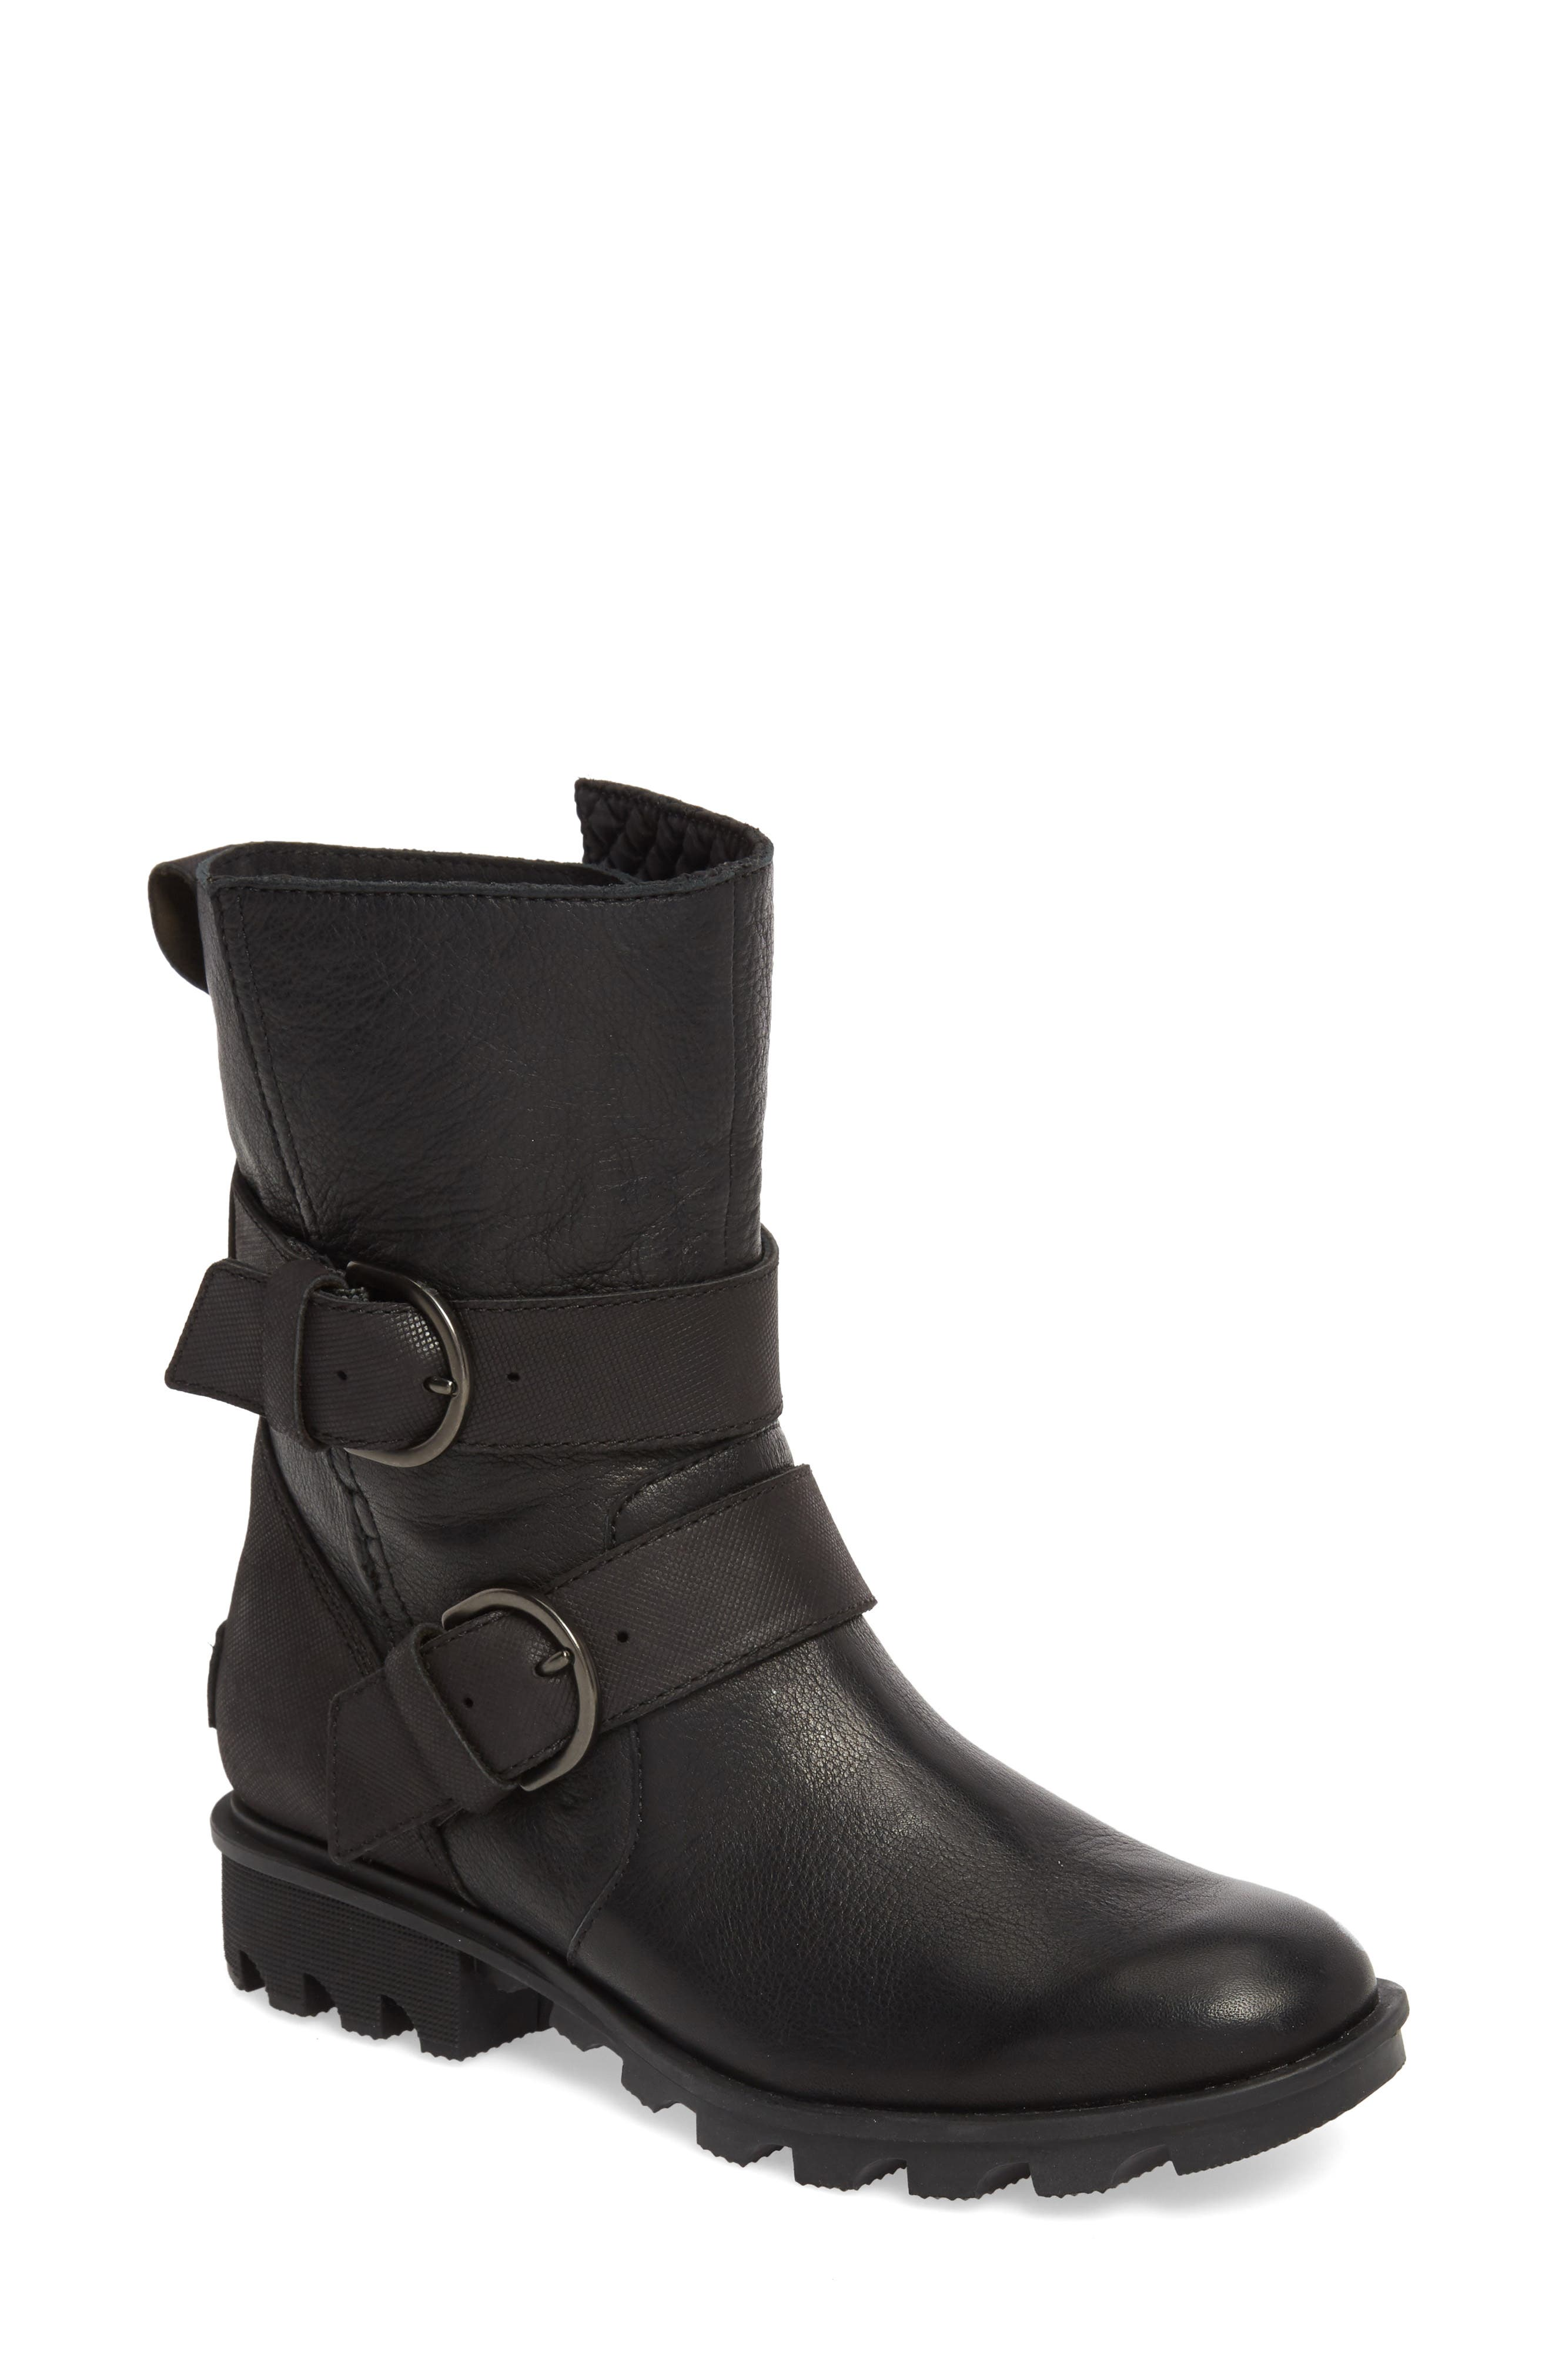 Sorel Phoenix Moto Waterproof Boot, Black